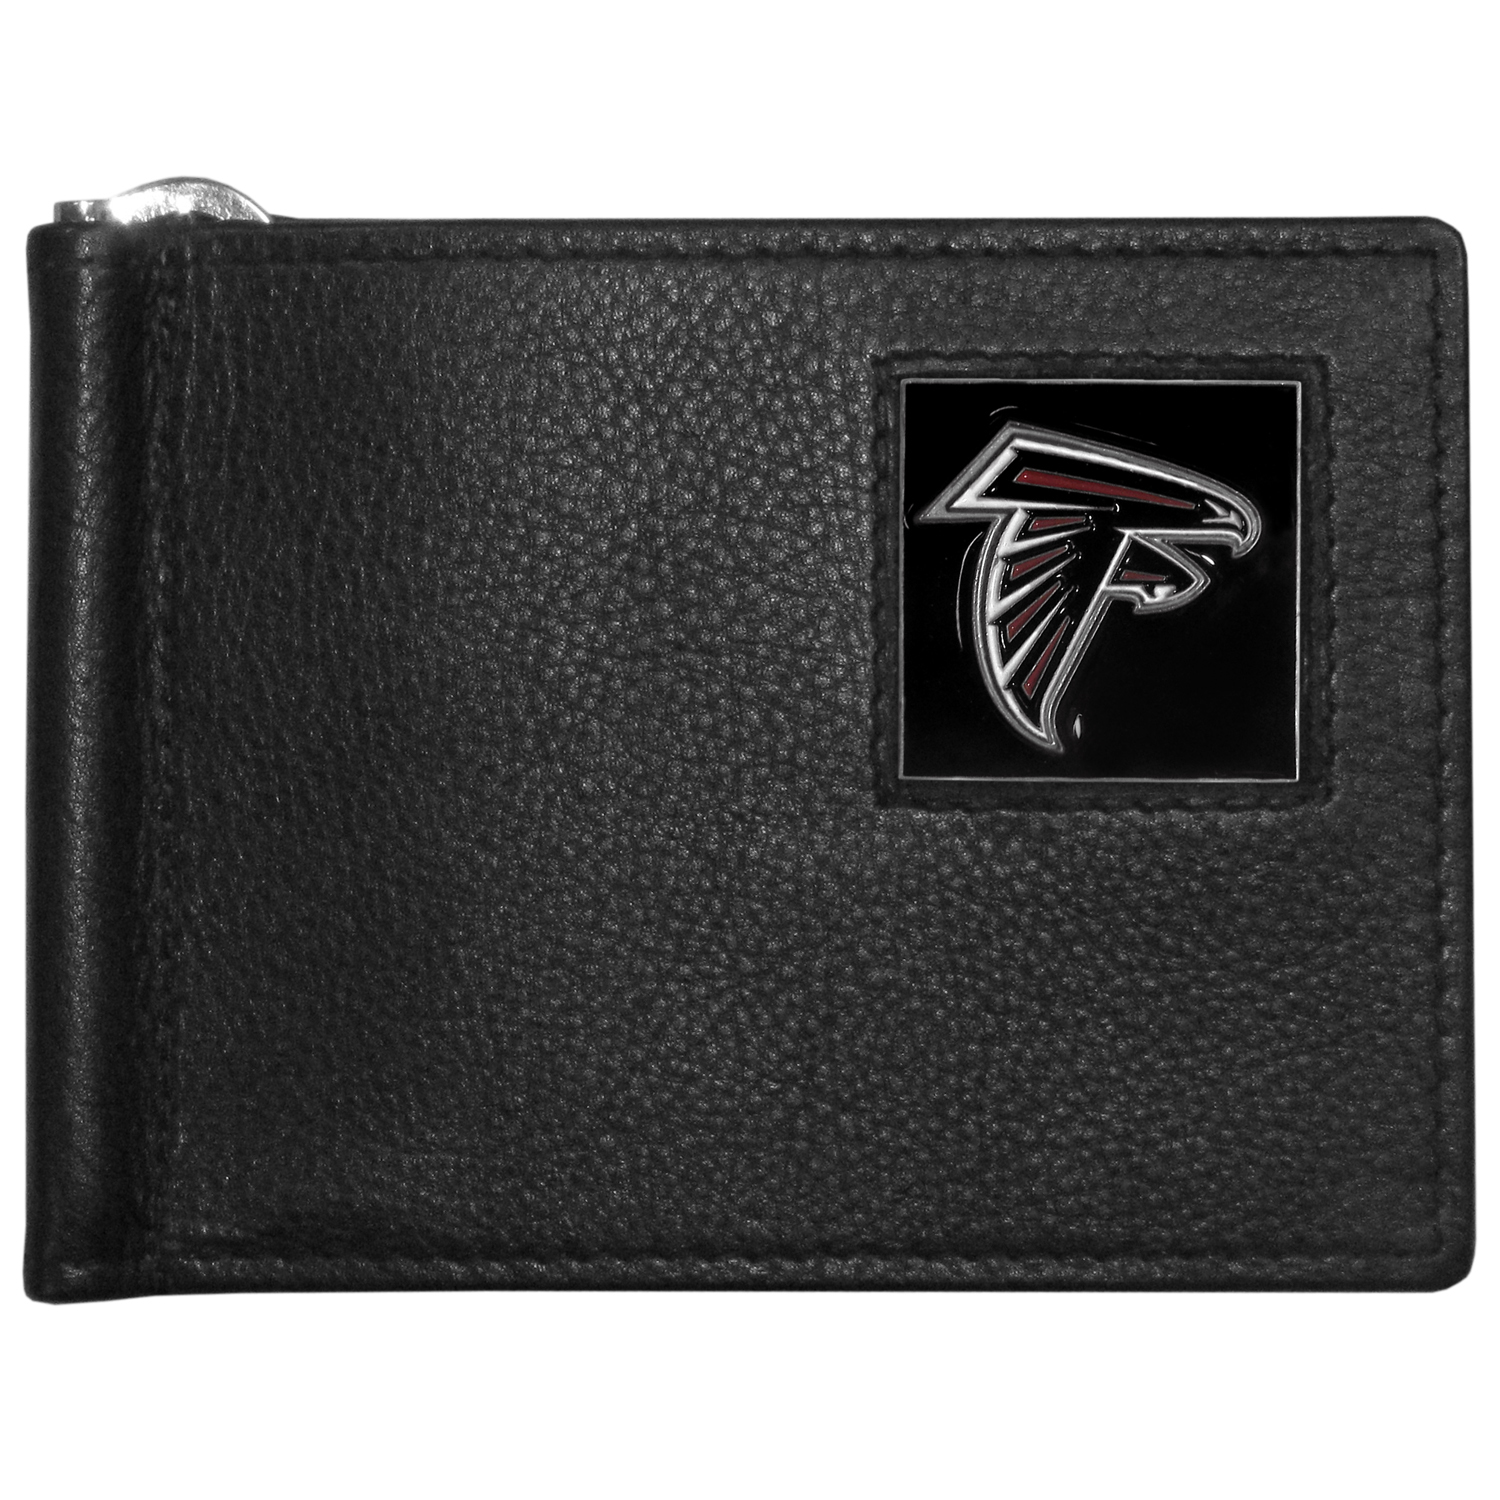 Atlanta Falcons Leather Bill Clip Wallet - This cool new style wallet features an inner, metal bill clip that lips up for easy access. The super slim wallet holds tons of stuff with ample pockets, credit card slots & windowed ID slot.  The wallet is made of genuine fine grain leather and it finished with a metal Atlanta Falcons emblem. The wallet is shipped in gift box packaging.